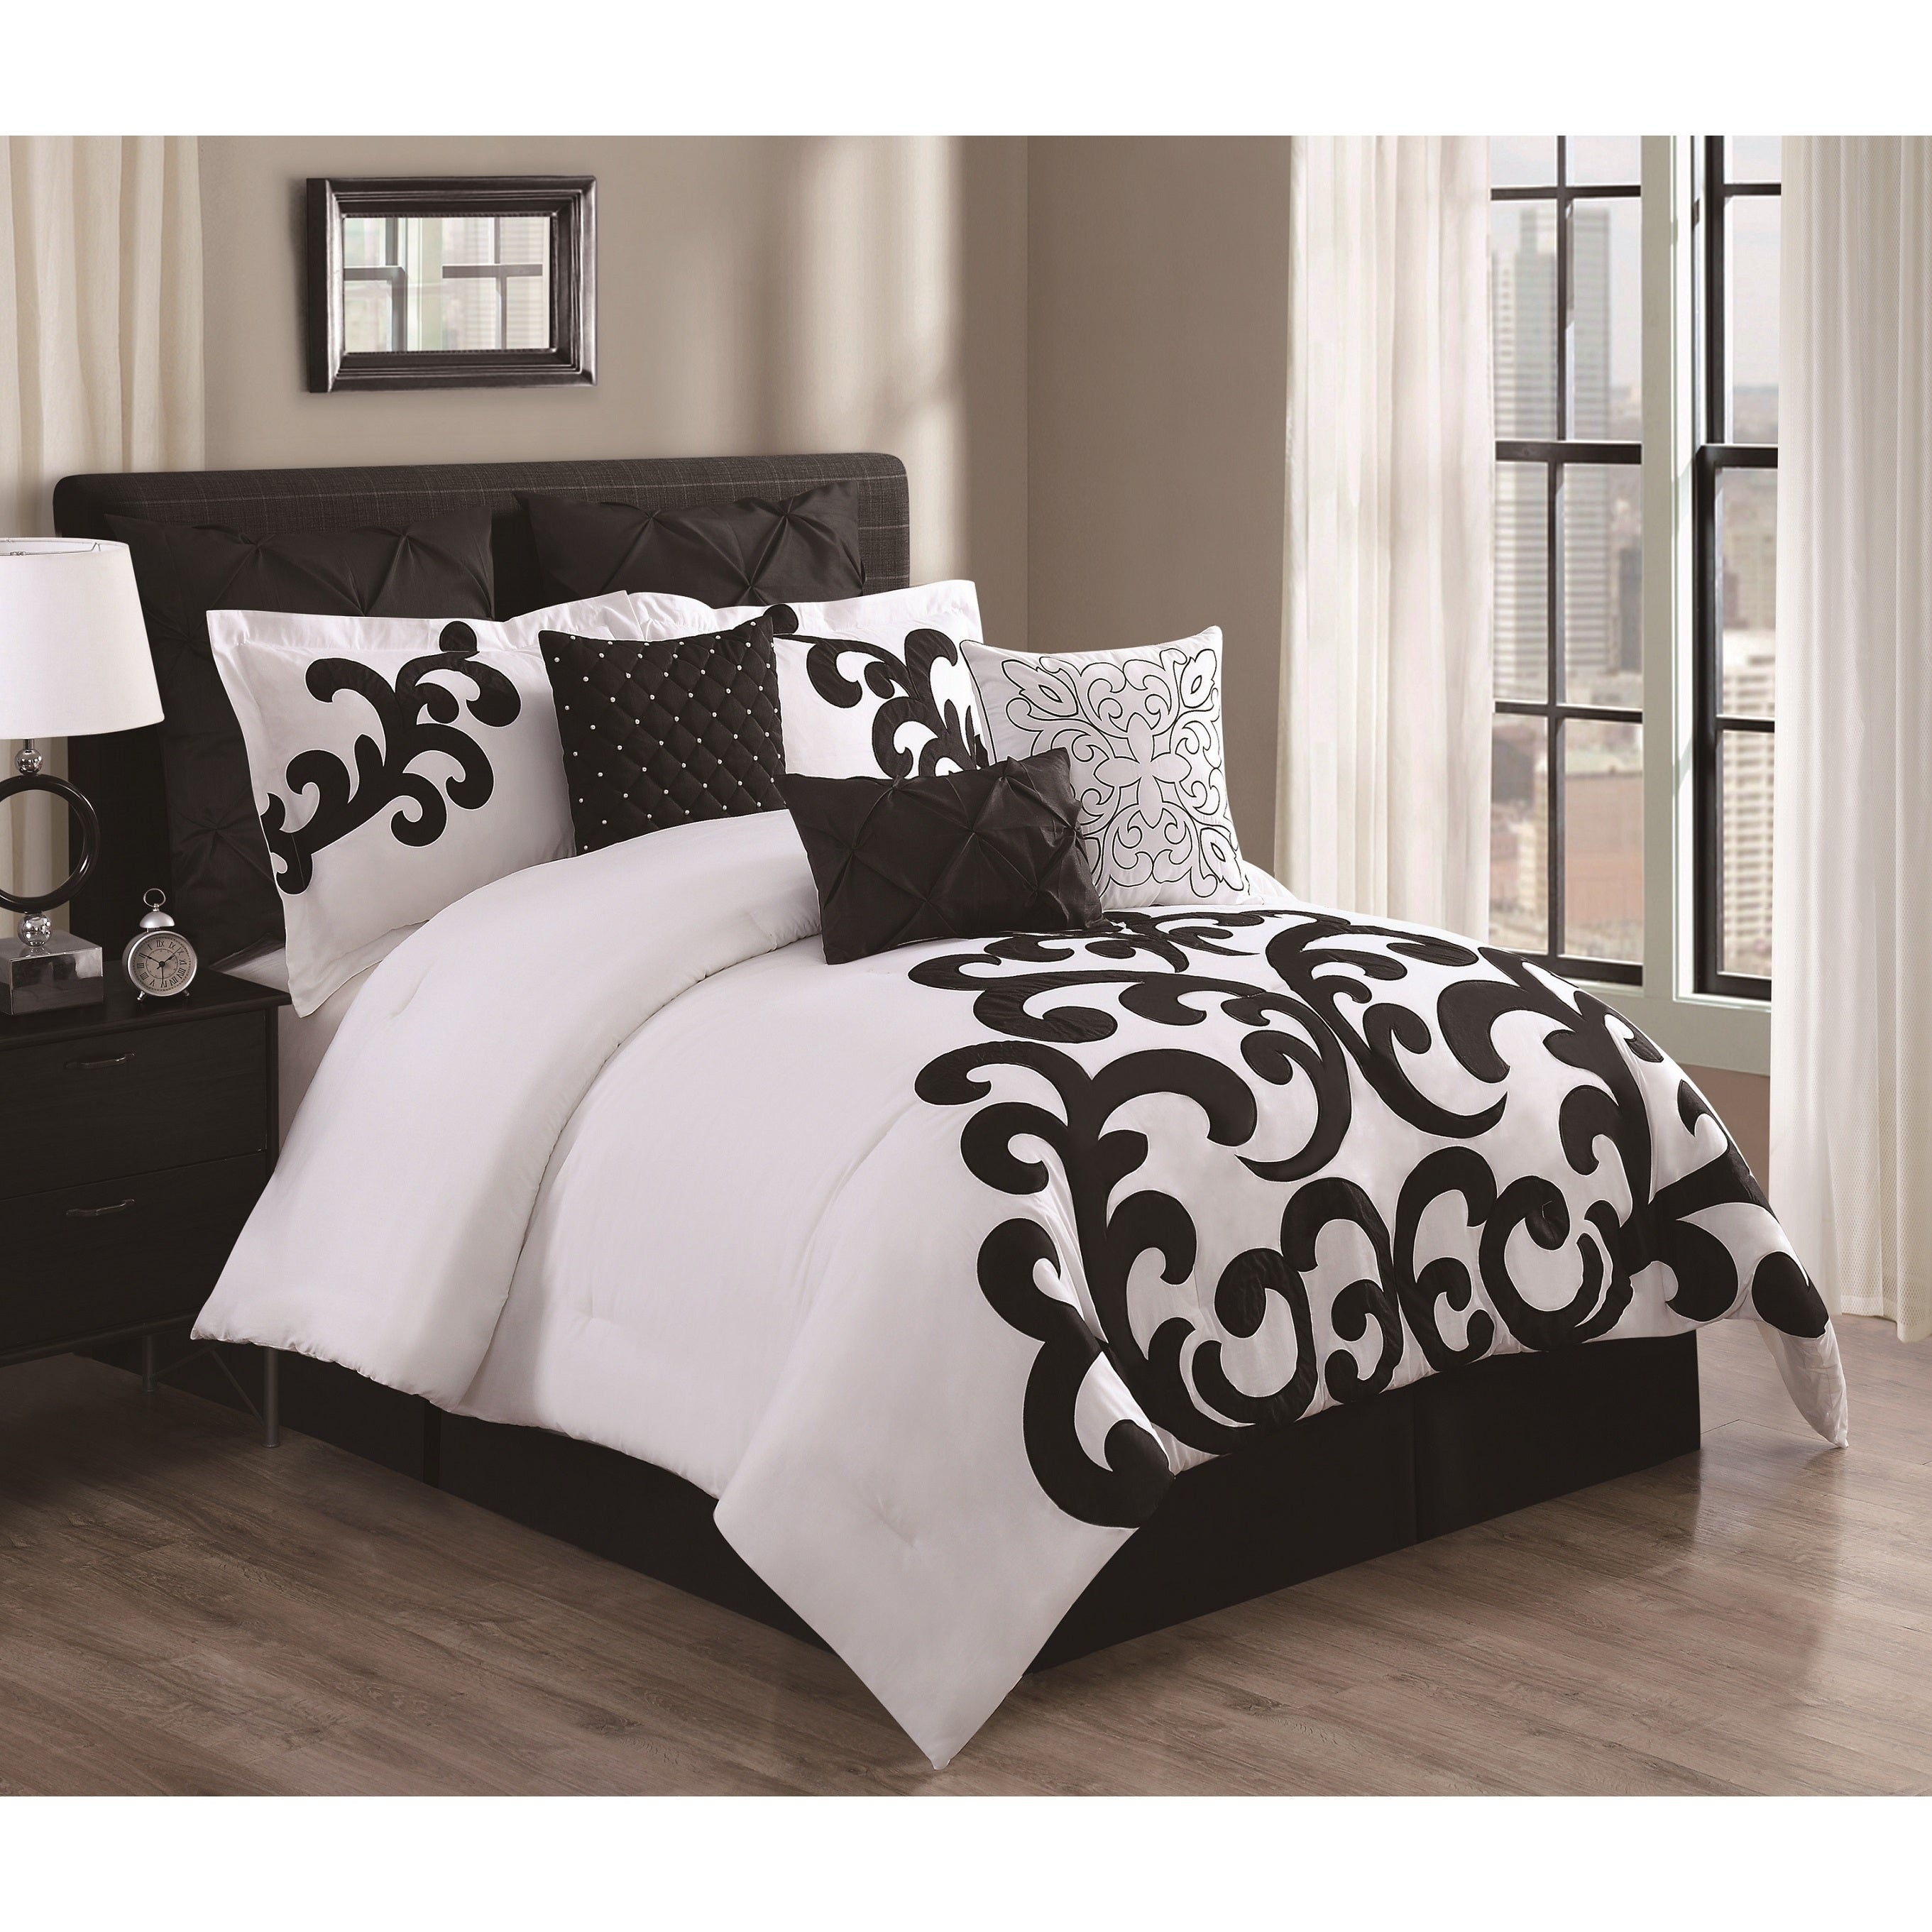 Empress Black and White Cotton 9 piece forter Set Free Shipping